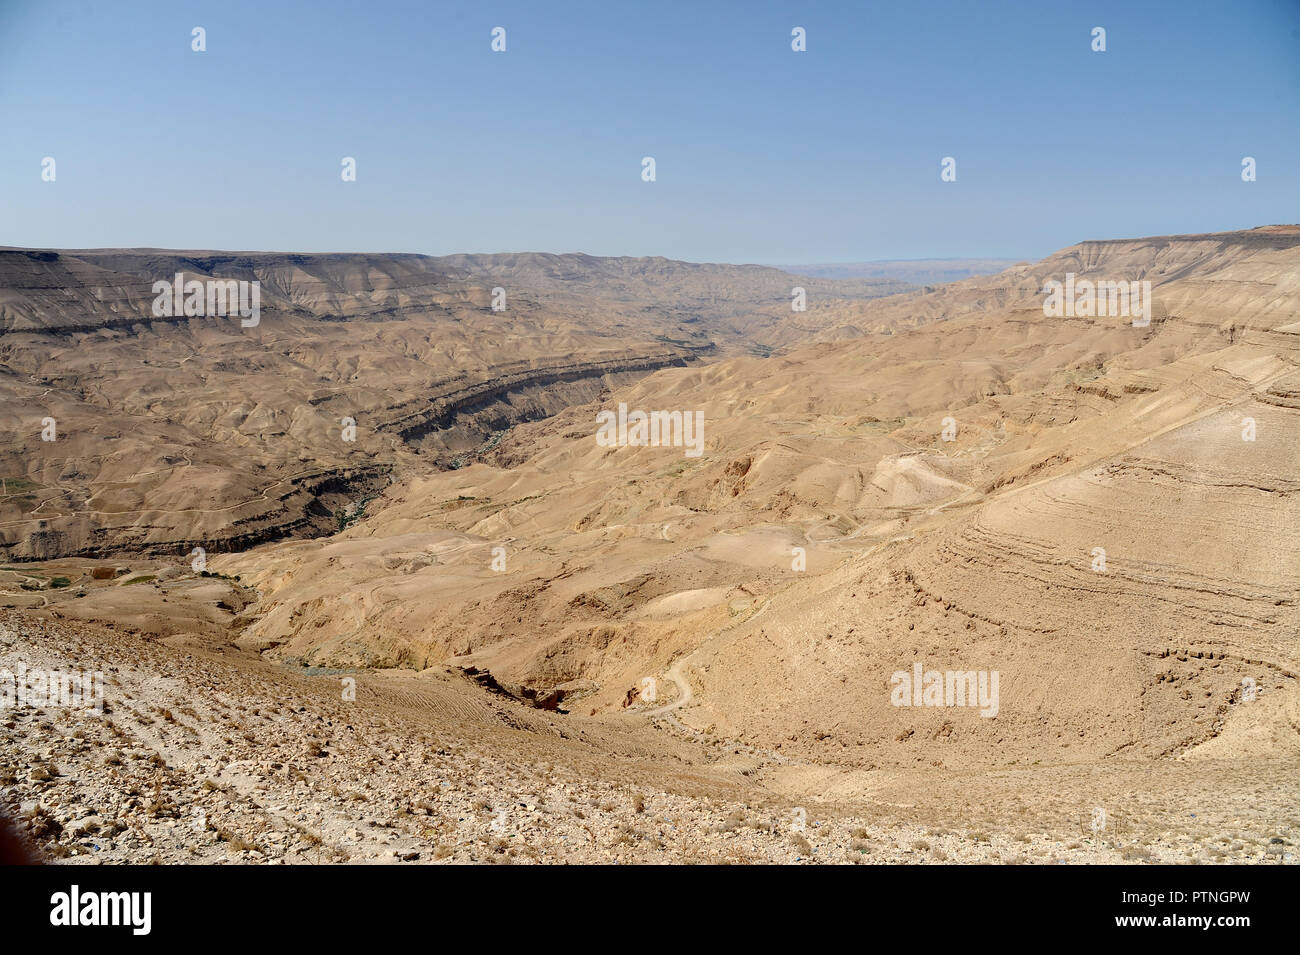 panoramic view from the King's Highway, which swoops over the high ridge of the Great Rift Valley. in Jordan Stock Photo